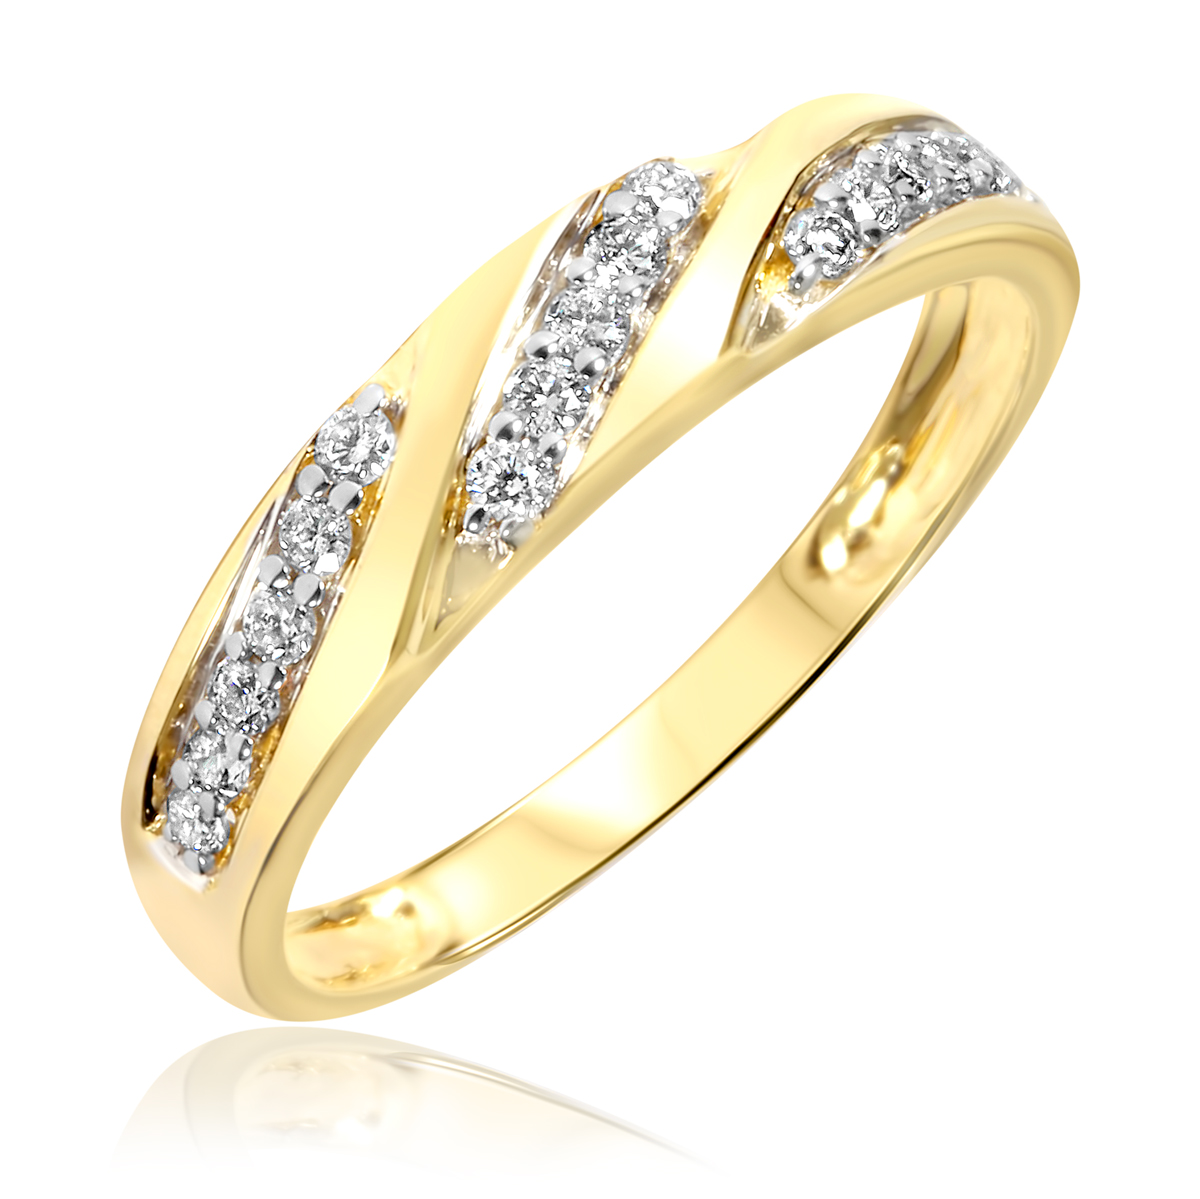 Gold Ring Ideas For Engagement - The Trendy Bride | Indian Wedding ...